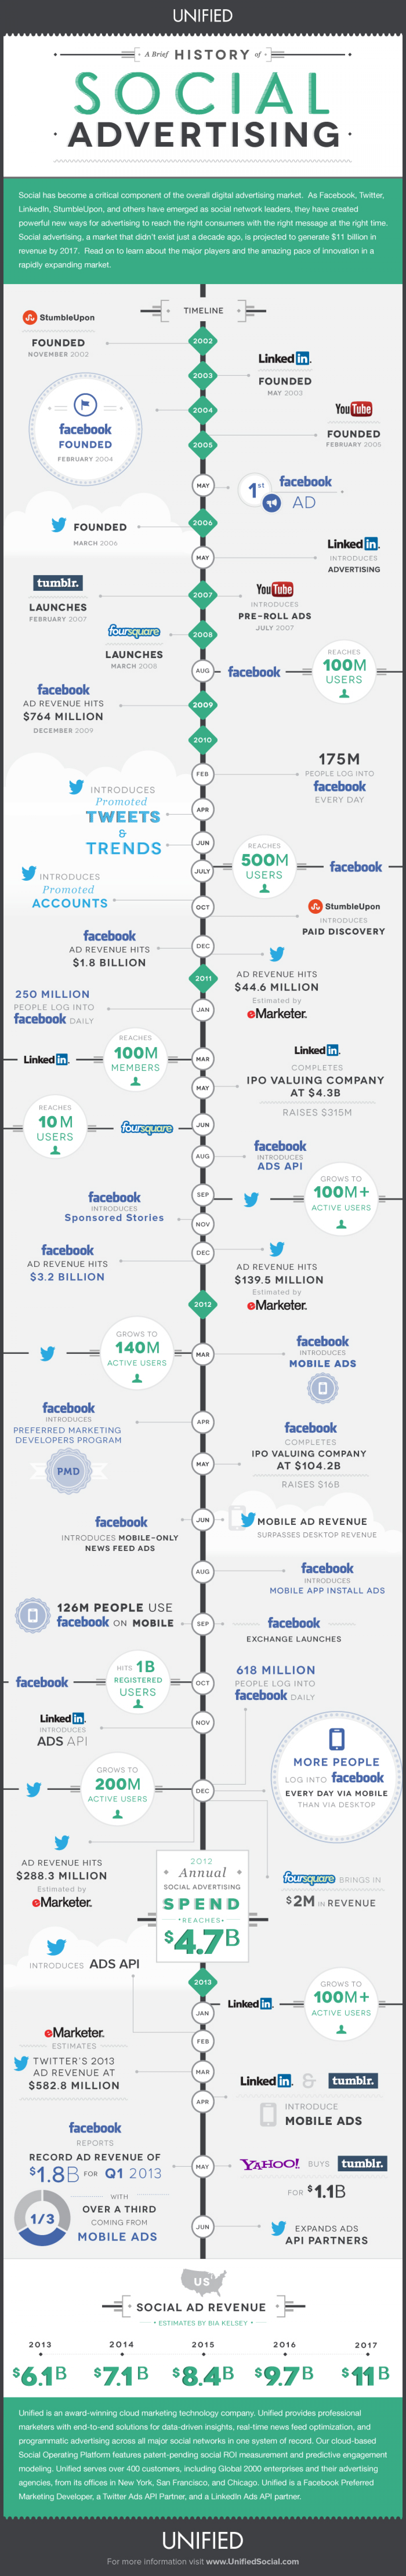 A Brief History of Social Advertising Infographic